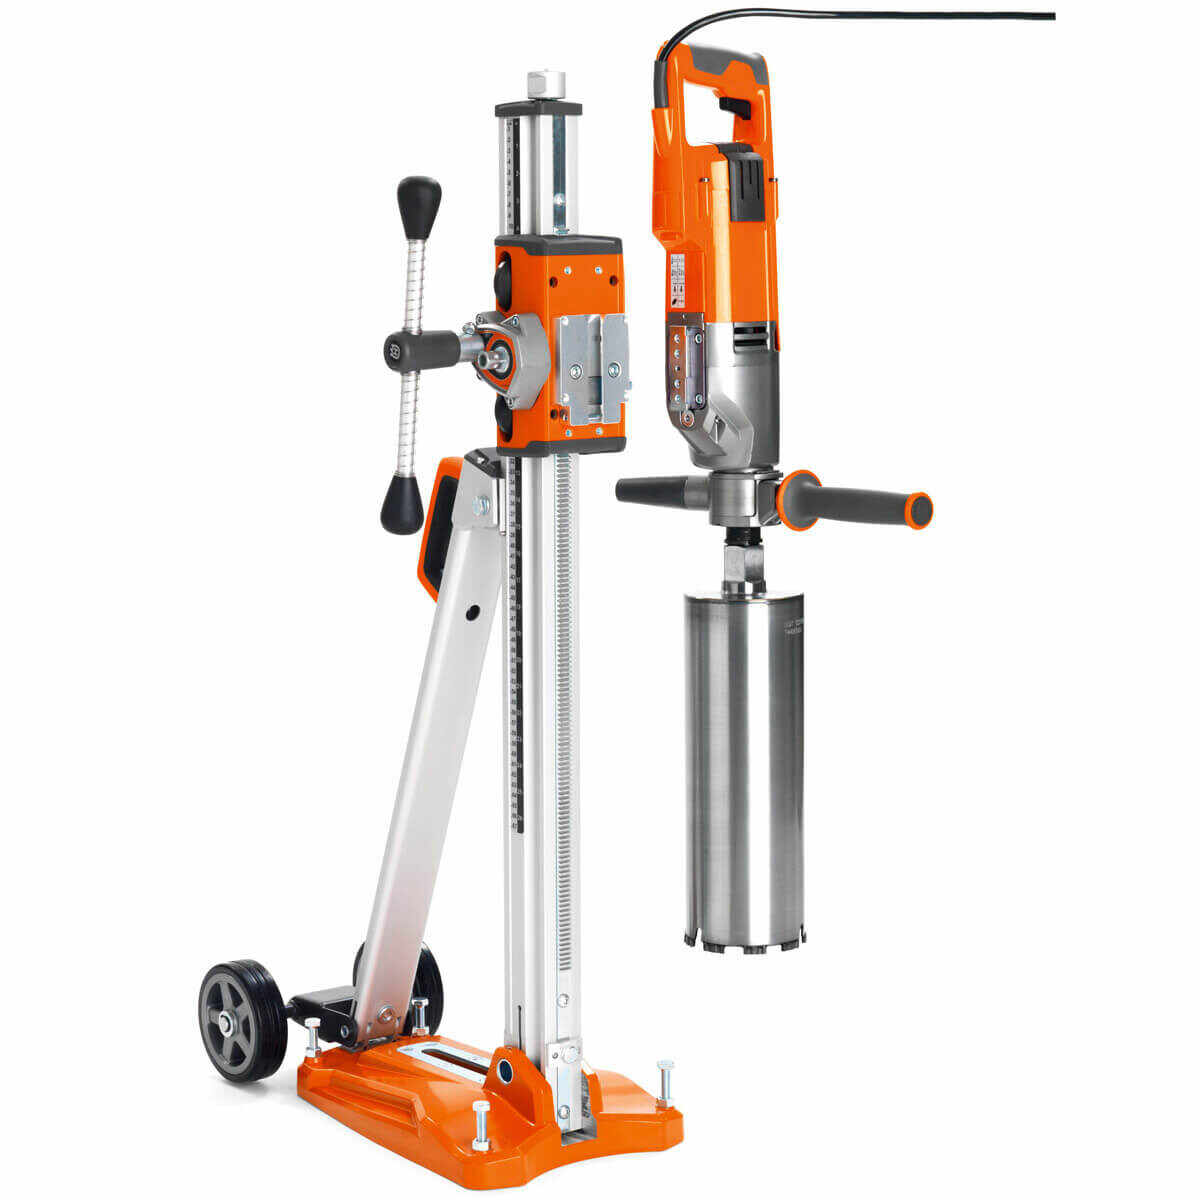 Husqvarna DM 220 Core Drill Motor with Optional Stand